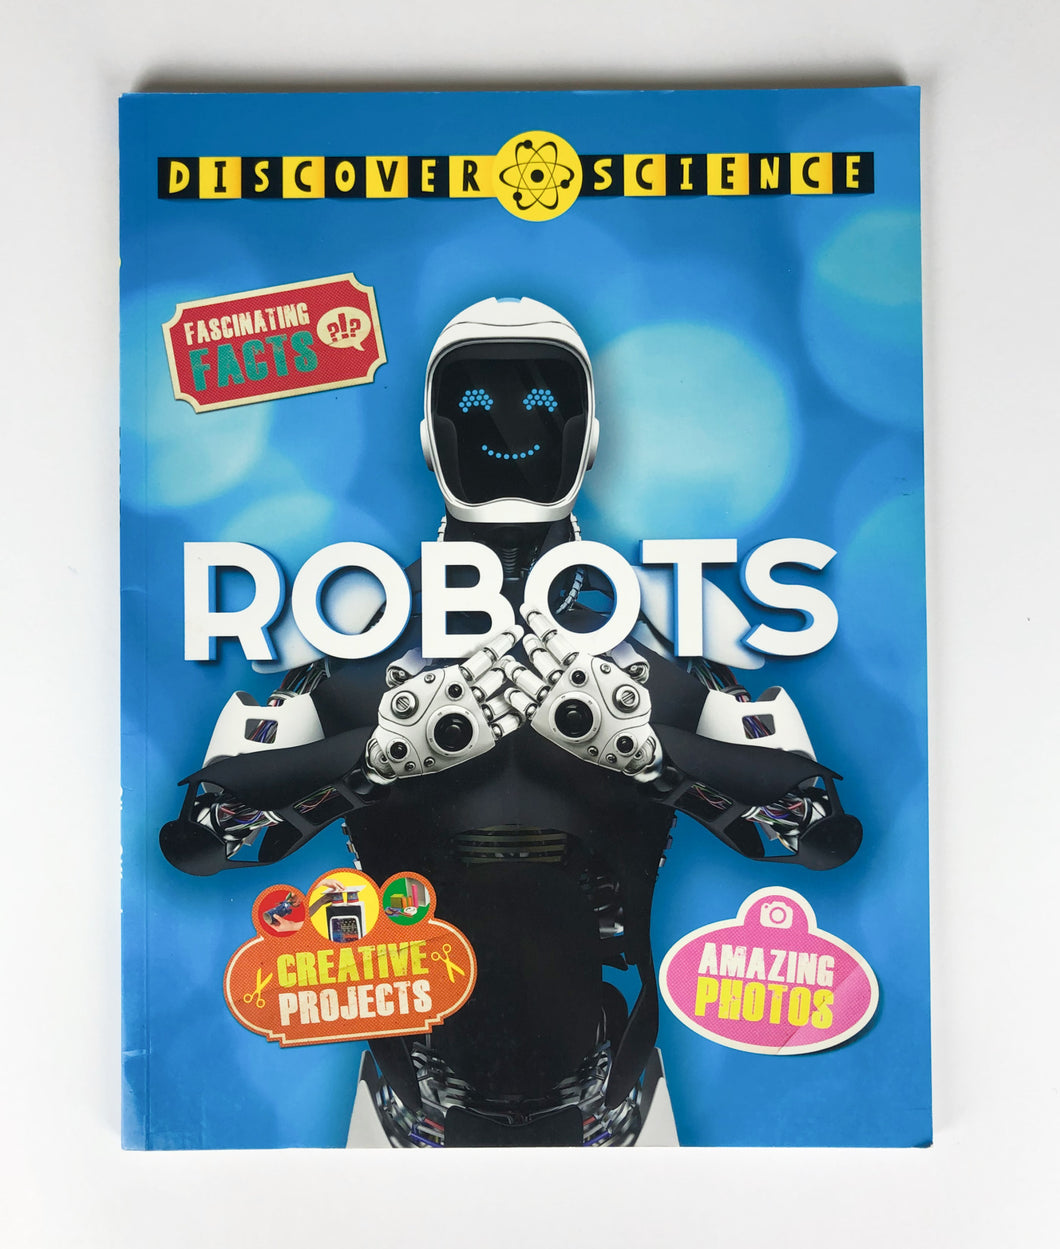 Robots by Discover Science | Age 5+